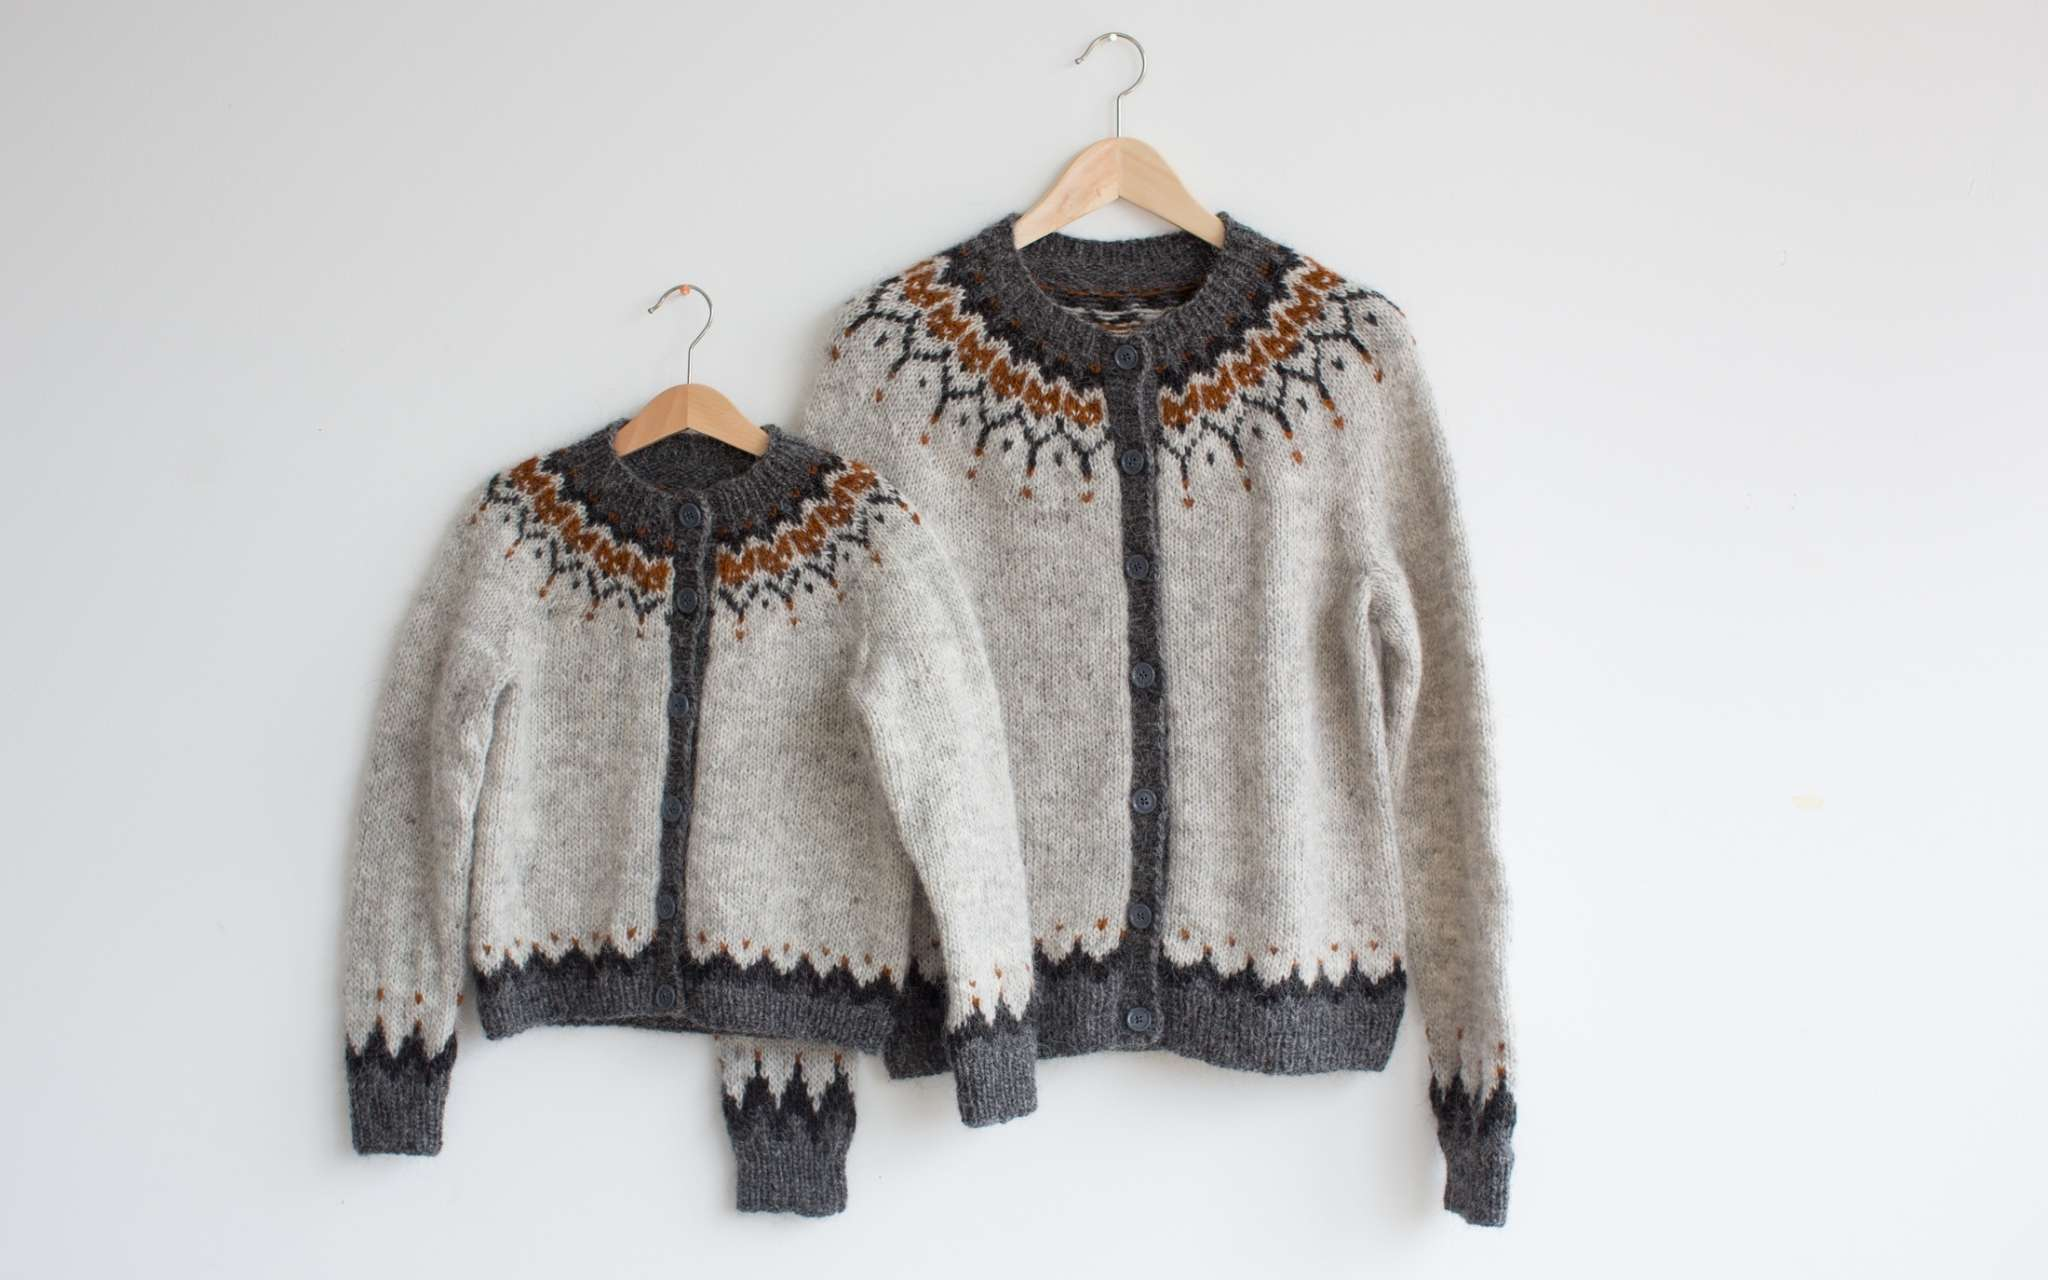 Matching adult and kid sweaters hang on wooden clothes hangers, overlapping against a wall. Both sweaters are grey, with a darker grey and orange colourwork yoke pattern.